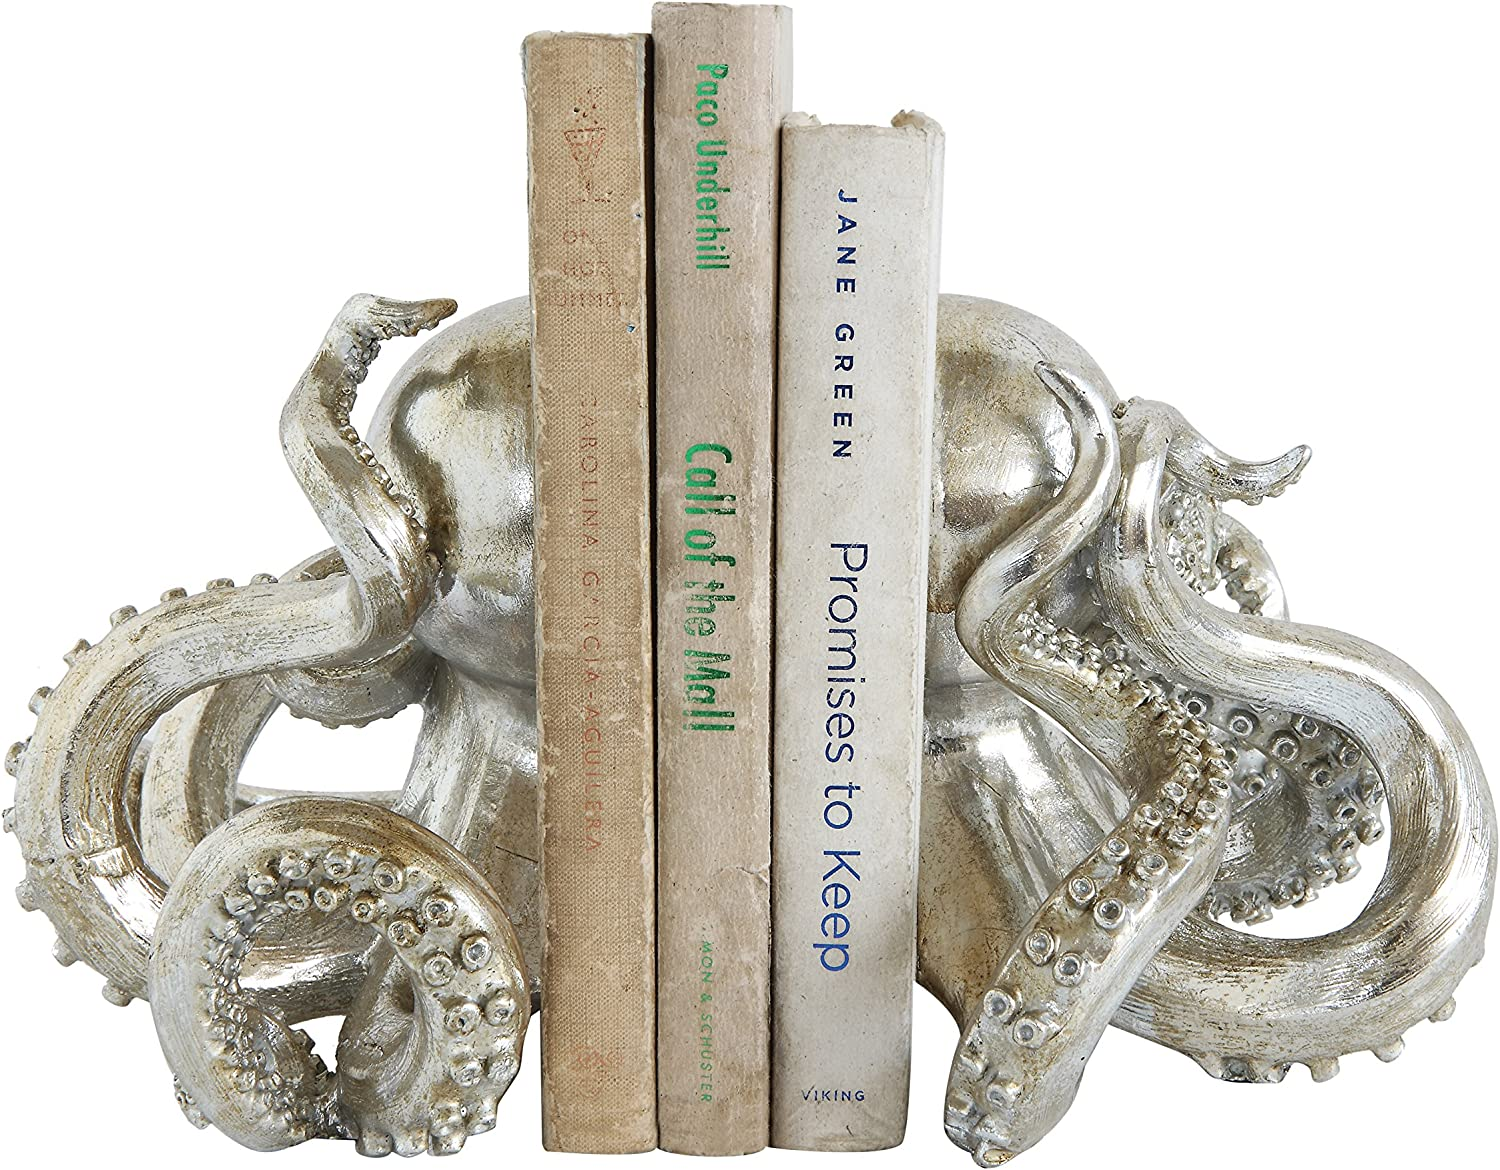 Creative Co-op Octopus Shaped Resin (Set of 2 Pieces) Bookends, Silver, 2